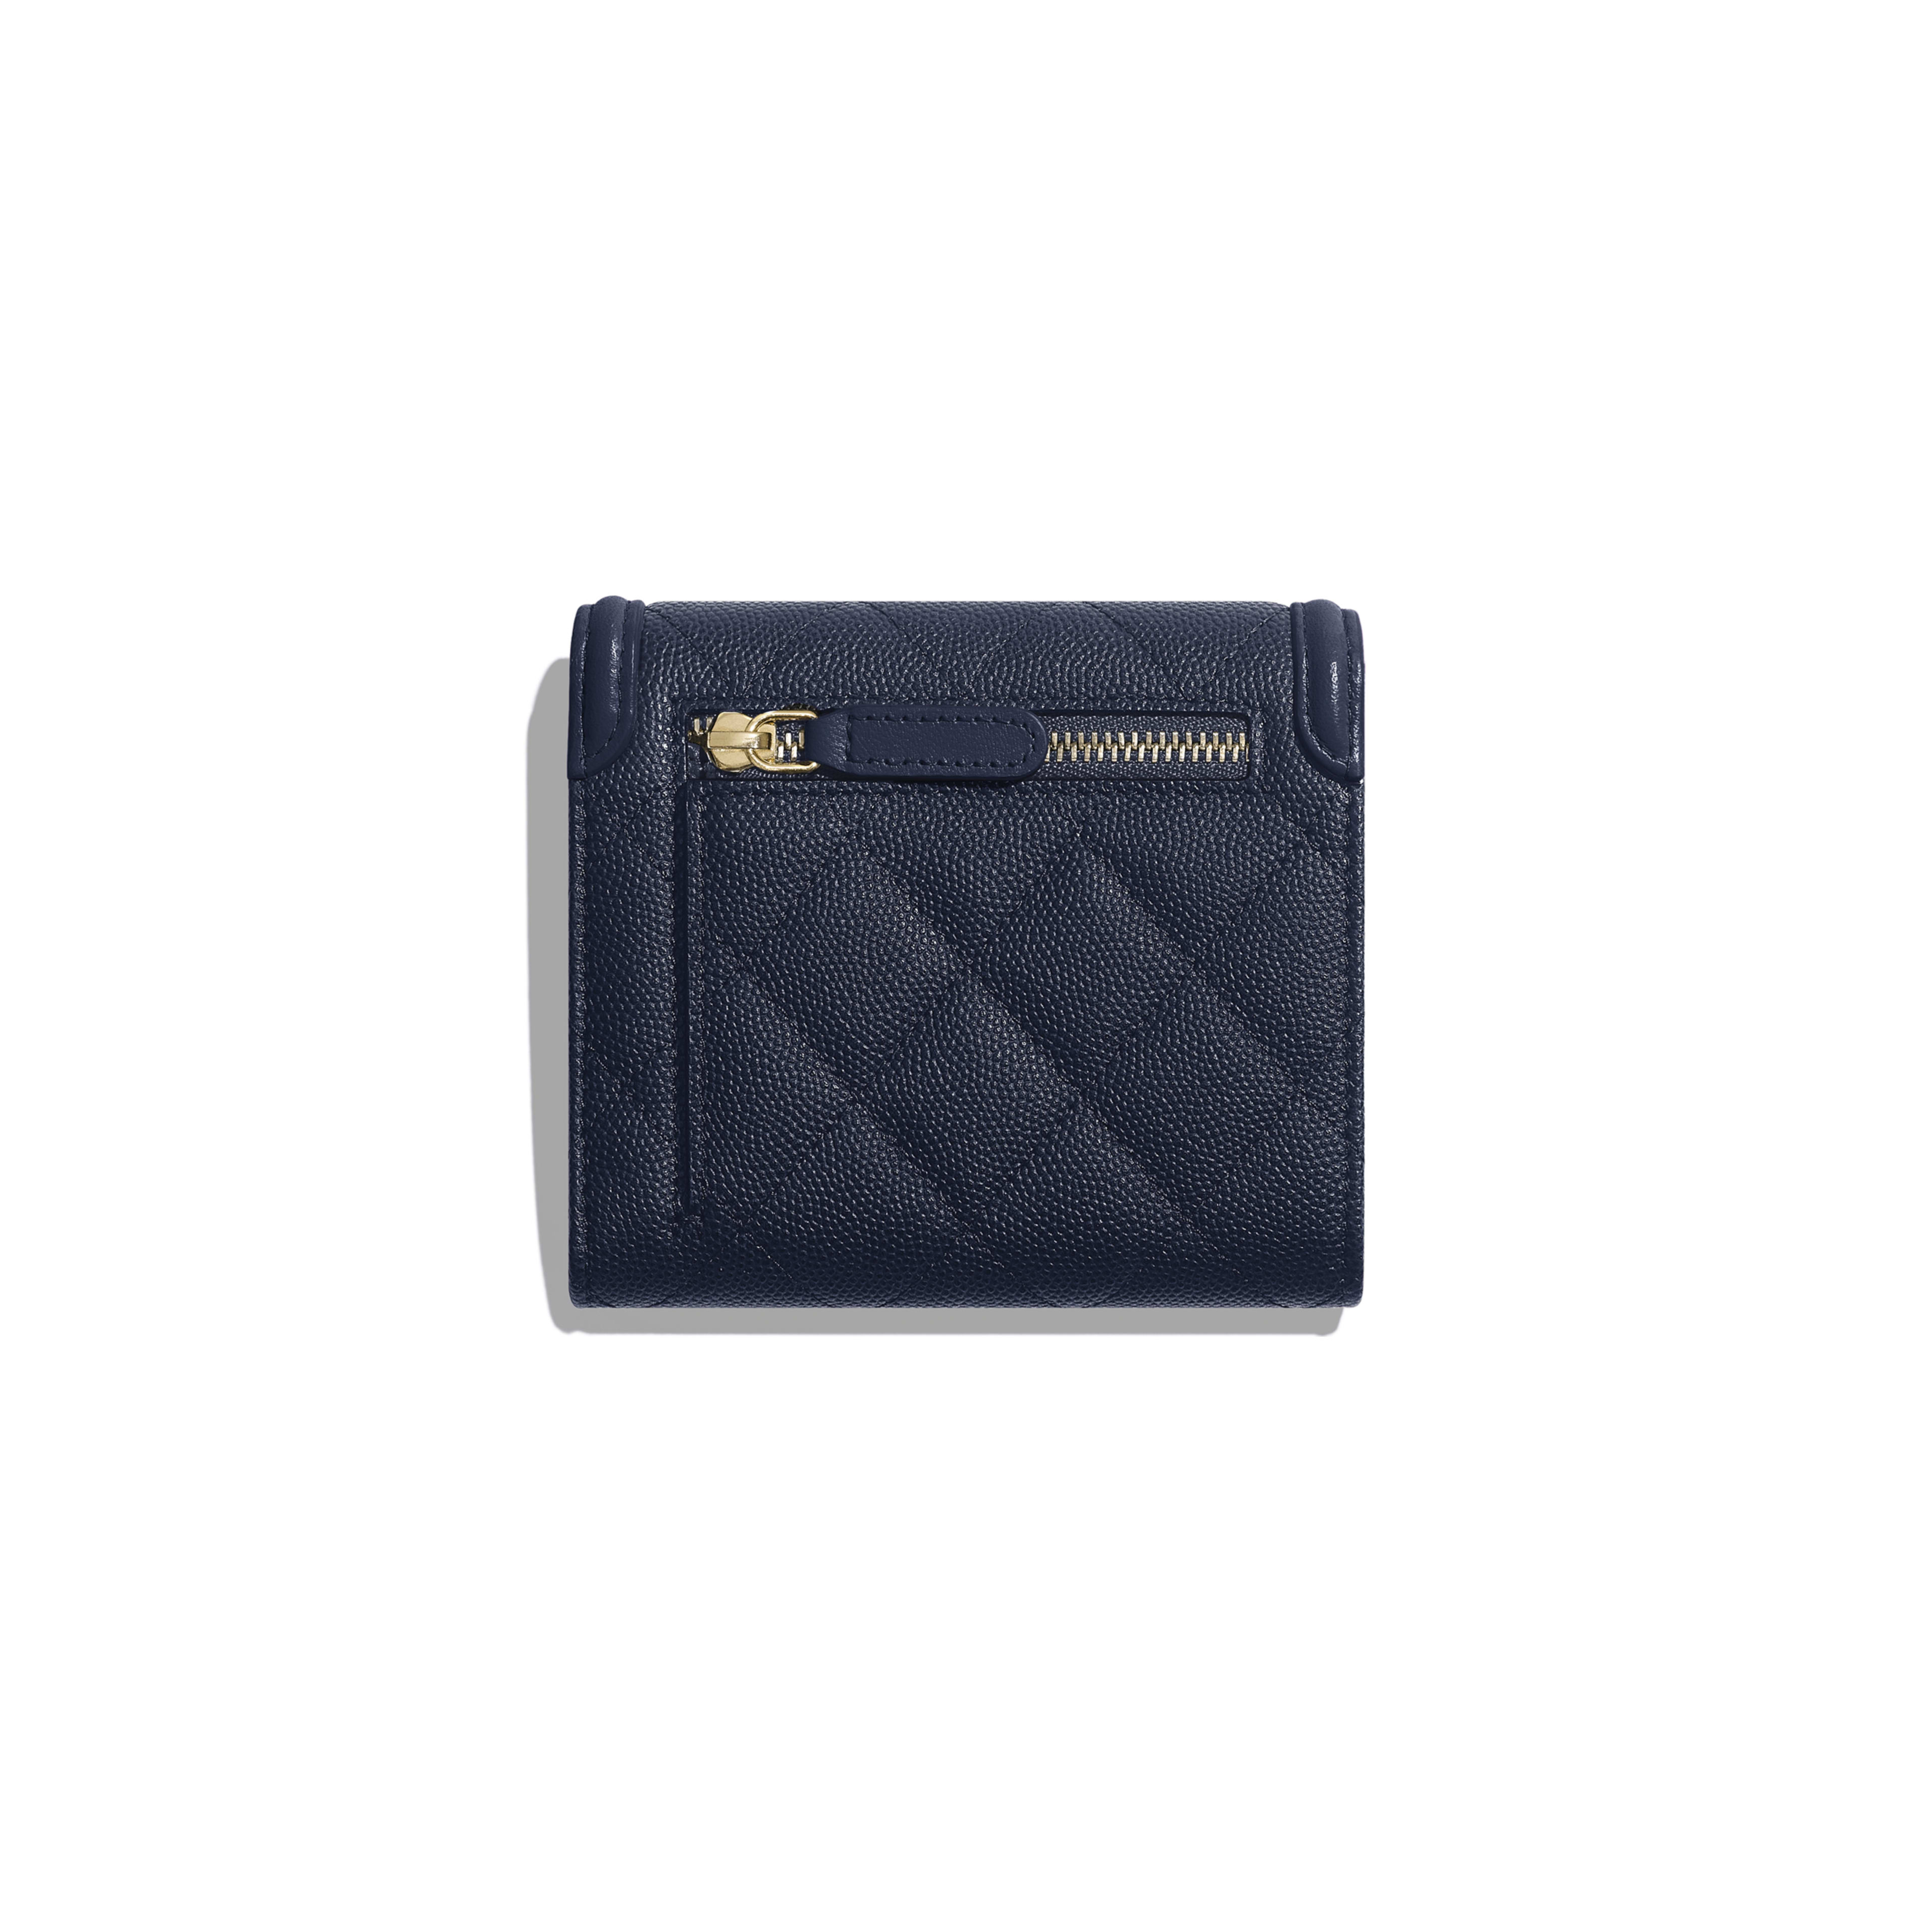 Small Flap Wallet - Navy Blue - Grained Calfskin & Gold-Tone Metal - Alternative view - see full sized version